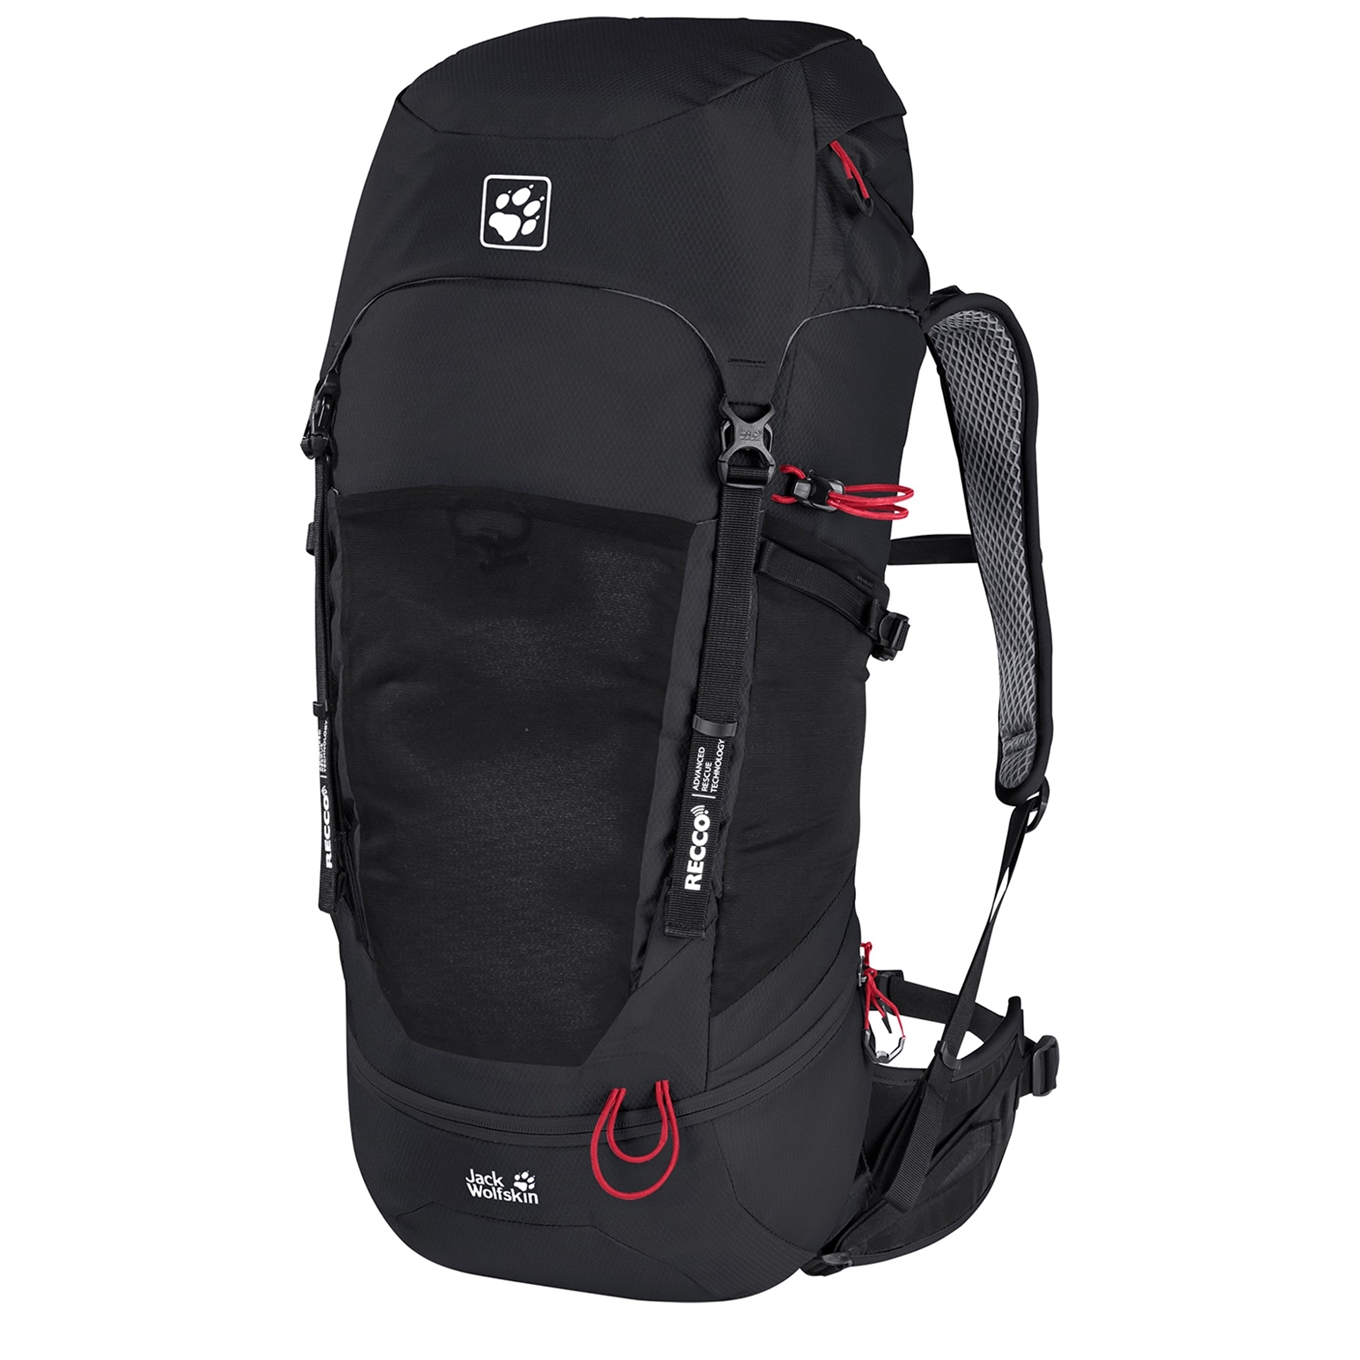 Jack Wolfskin Kalari Trail 36 black backpack